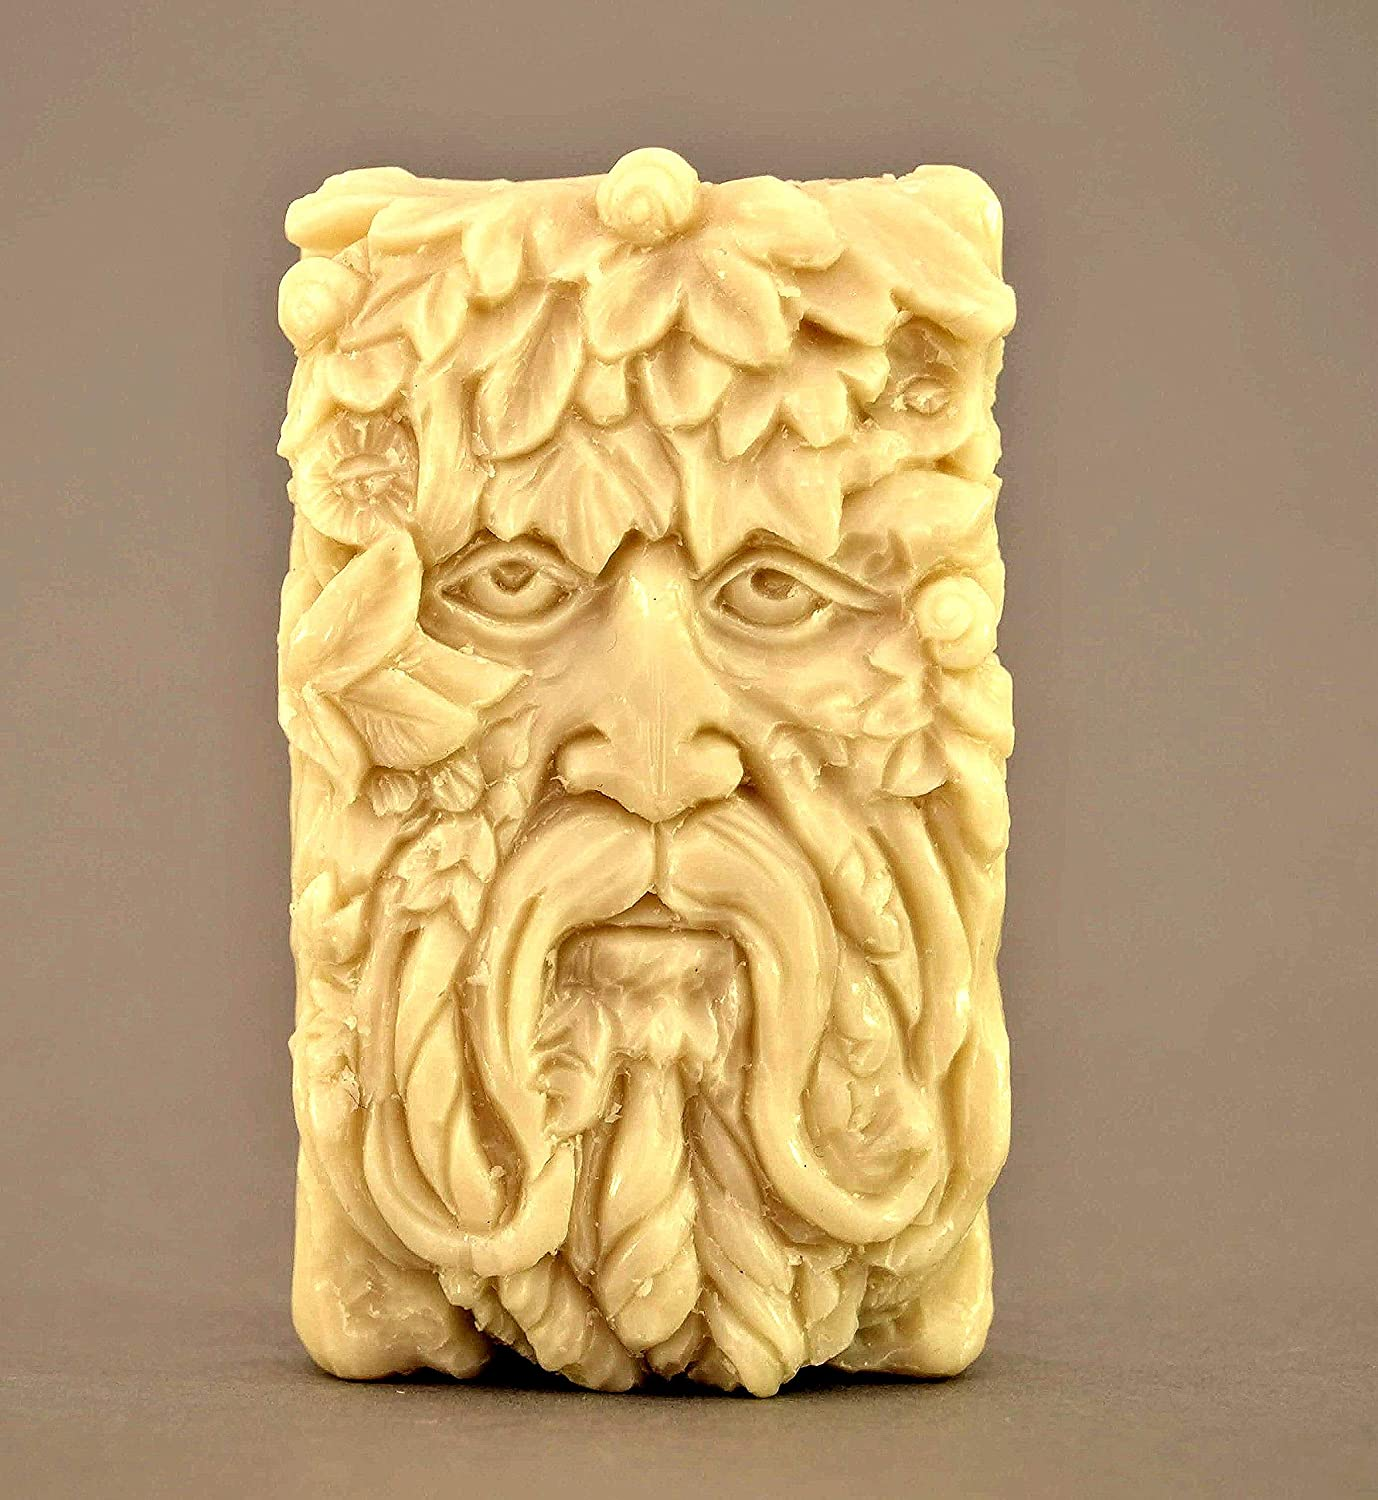 Green Man Silicone Mold SOAP Plaster New Free Shipping Direct sale of manufacturer Clay Celtic Wax Resin